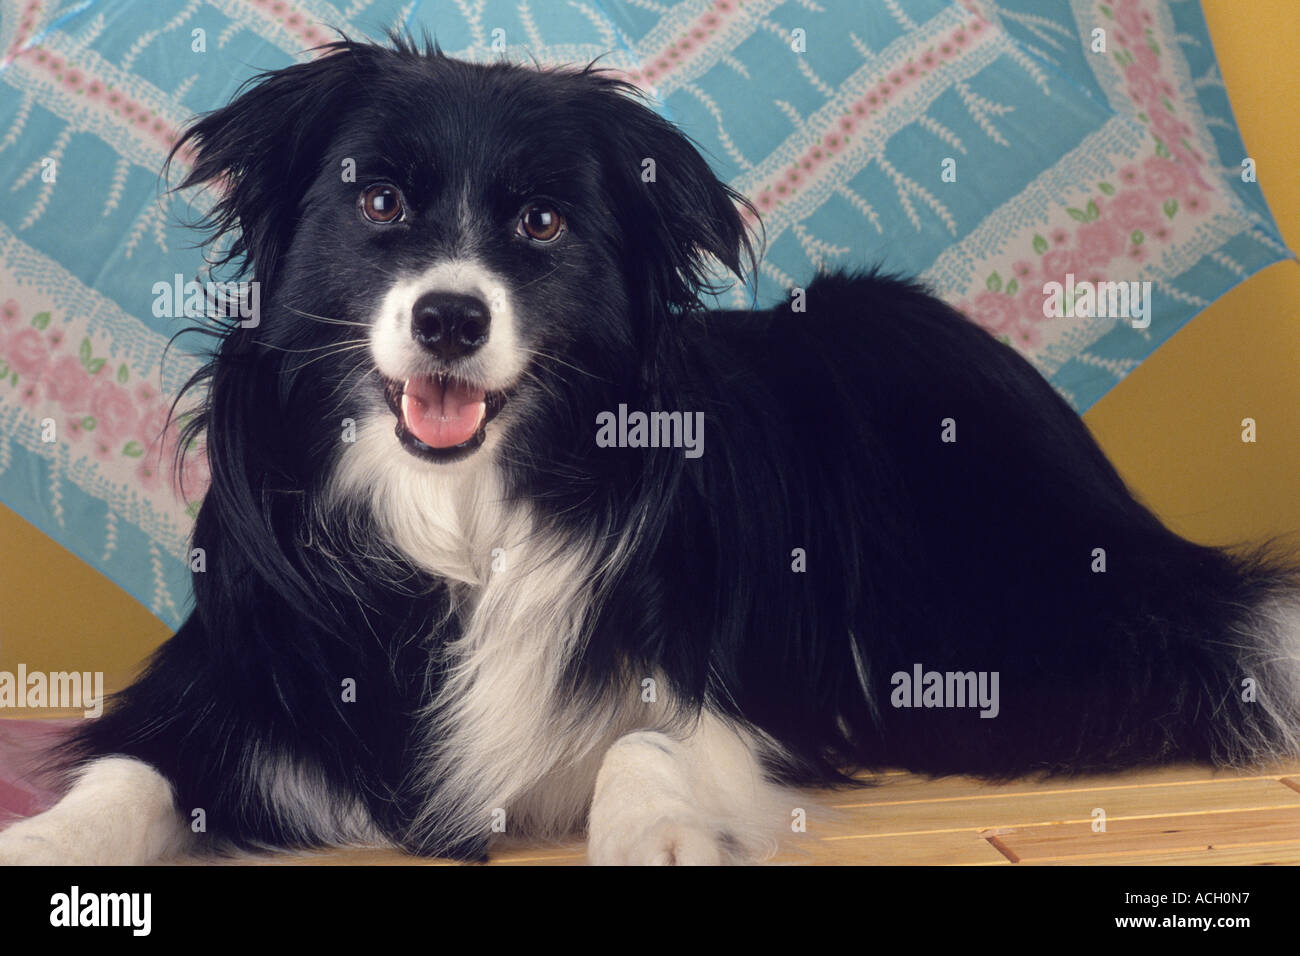 Stock Photo Dog Mixed Breed Pomeranian Border Collie Cross Smiling